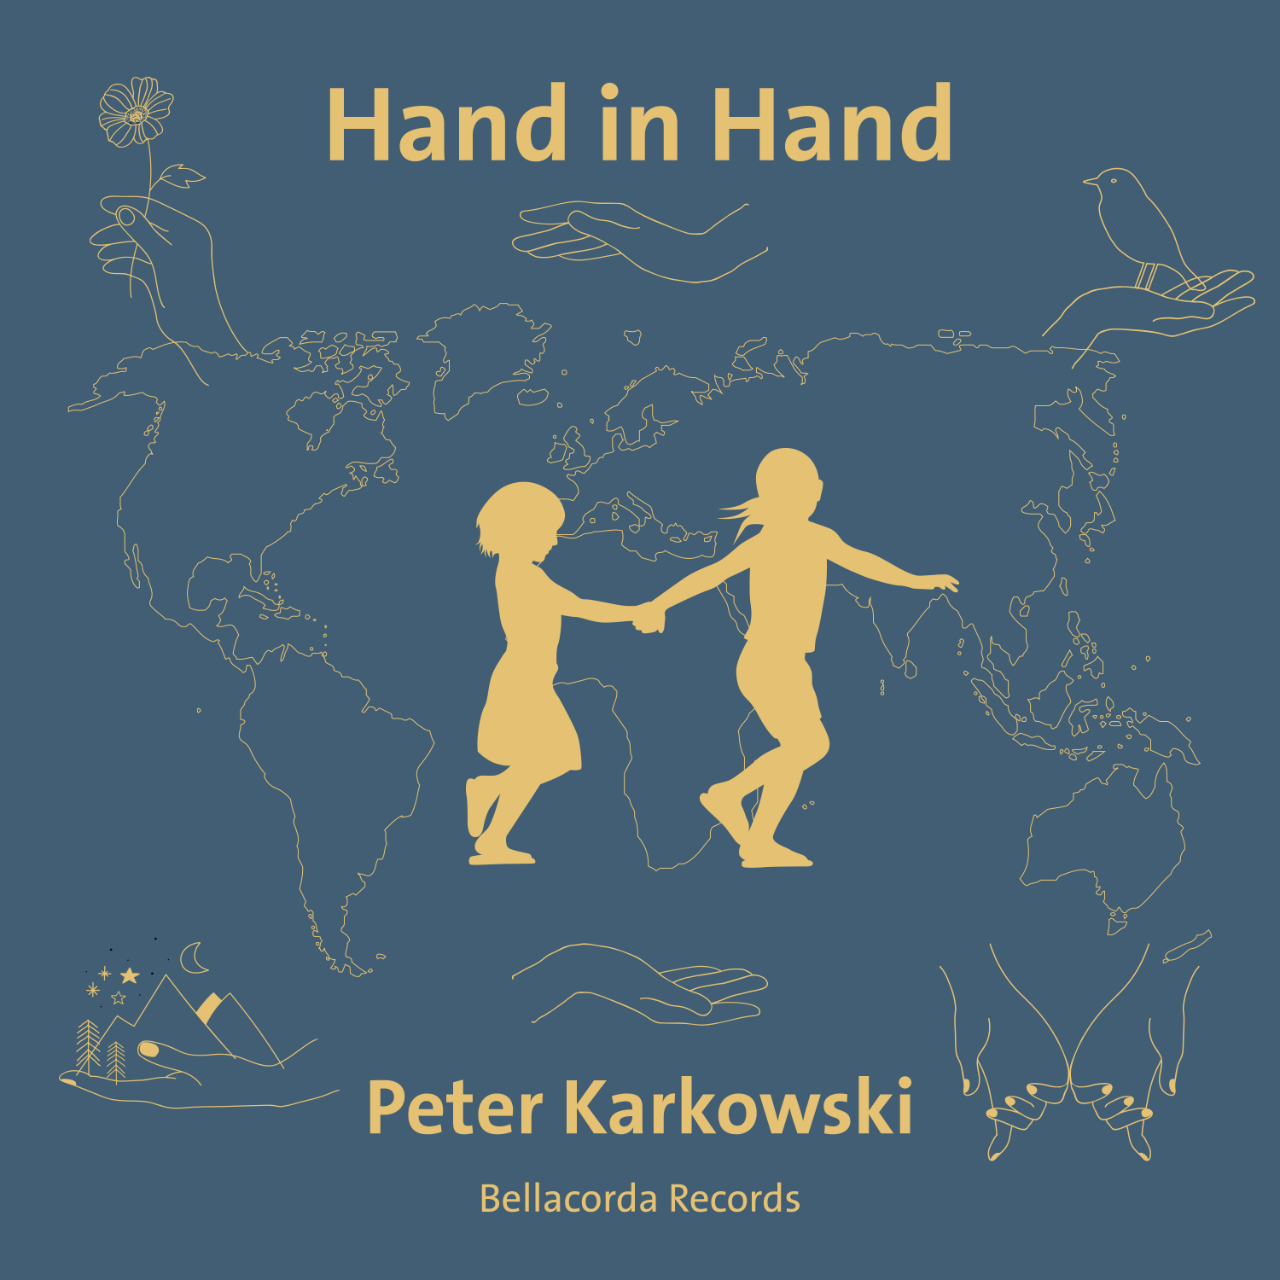 Hand in Hand - Single Cover - Peter Karkowski 2